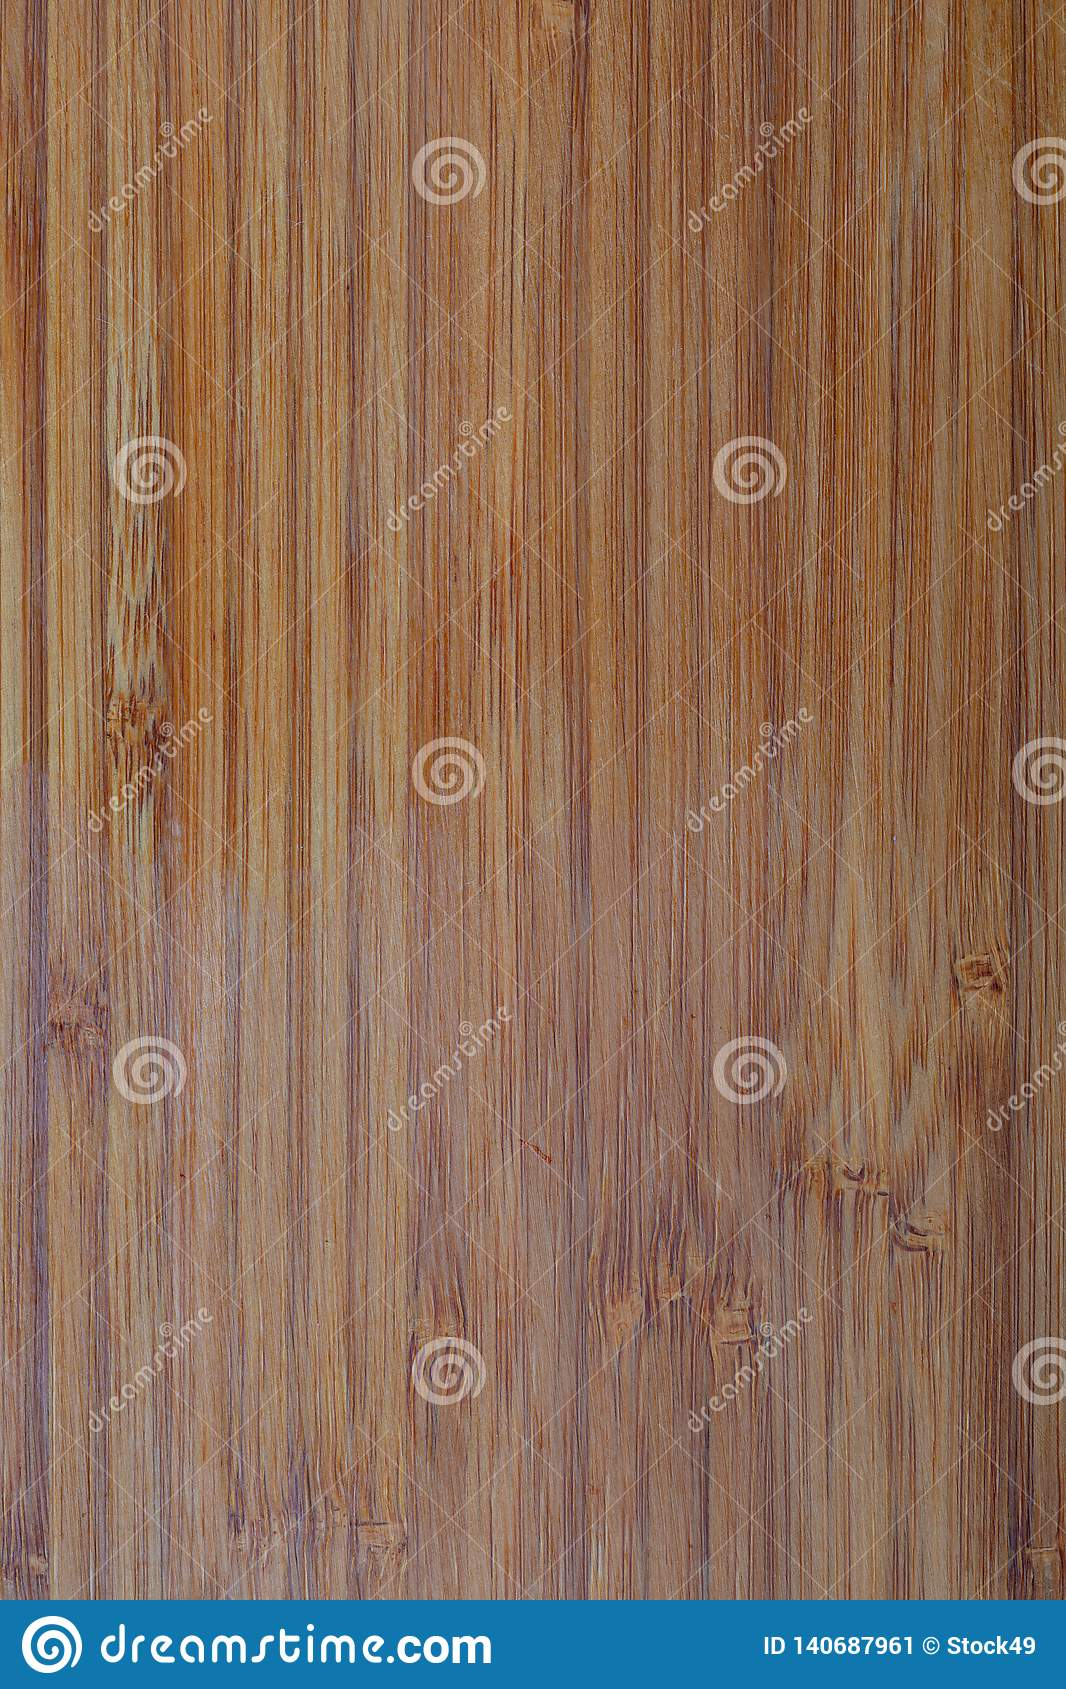 Rustic bamboo texture. Vertical lines.